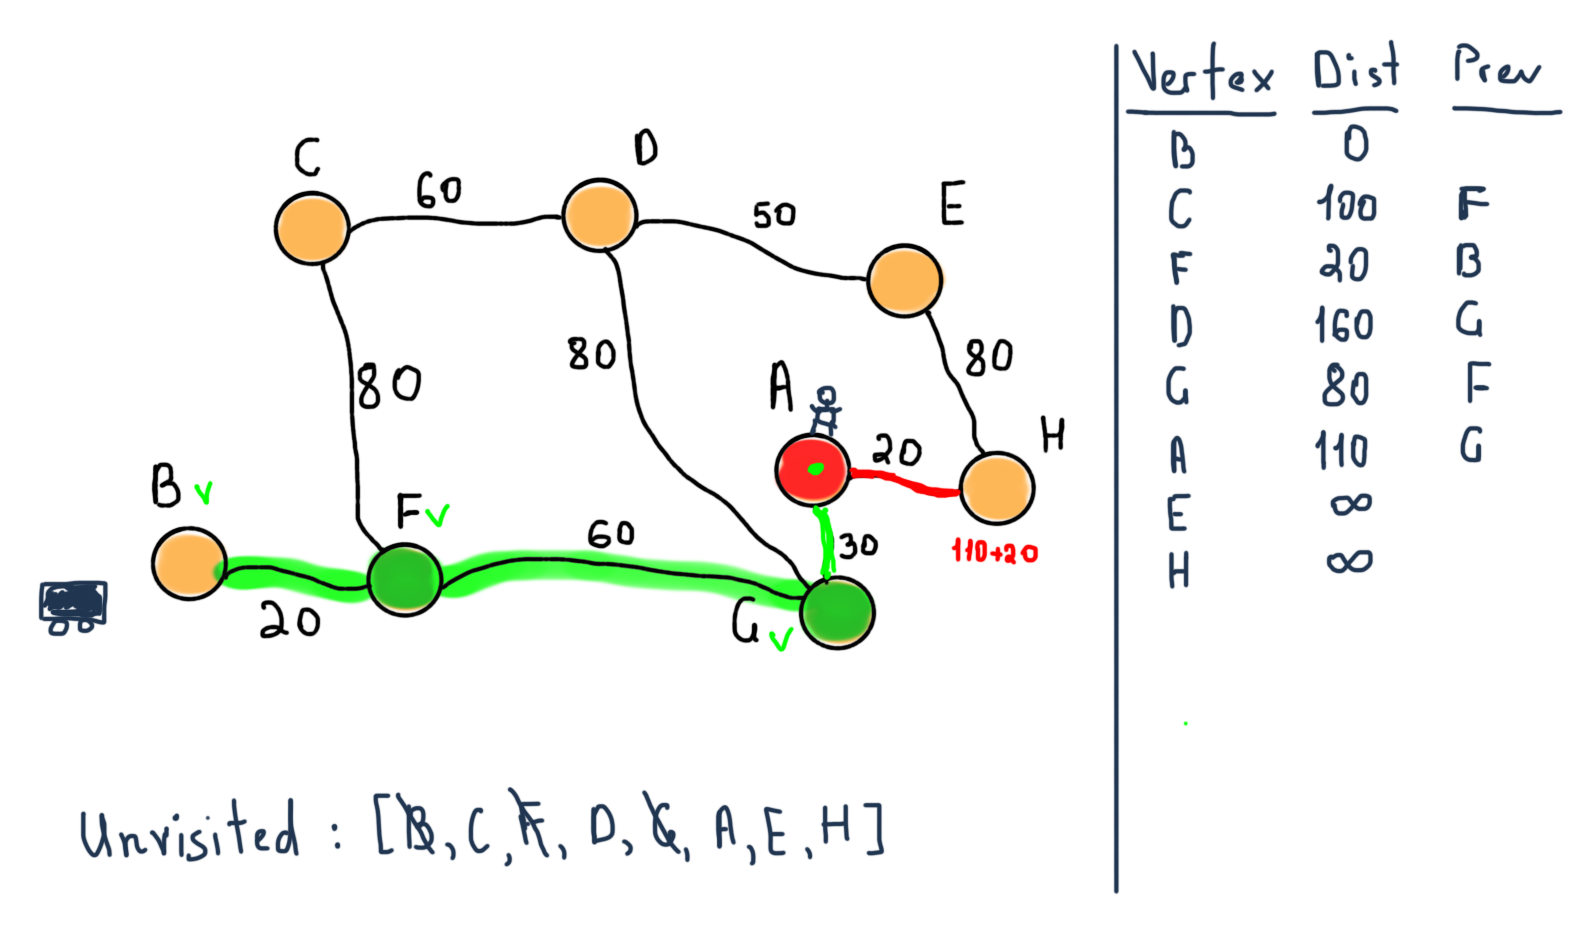 How To Think In Graphs An Illustrative Introduction Graph Theory Following Table Represents The Wiring Connections That Worked For Me When Planning A Route Between Two Specific Nodes As Our Case Then We Can Stop So Next Step Stops Algorithm With Values